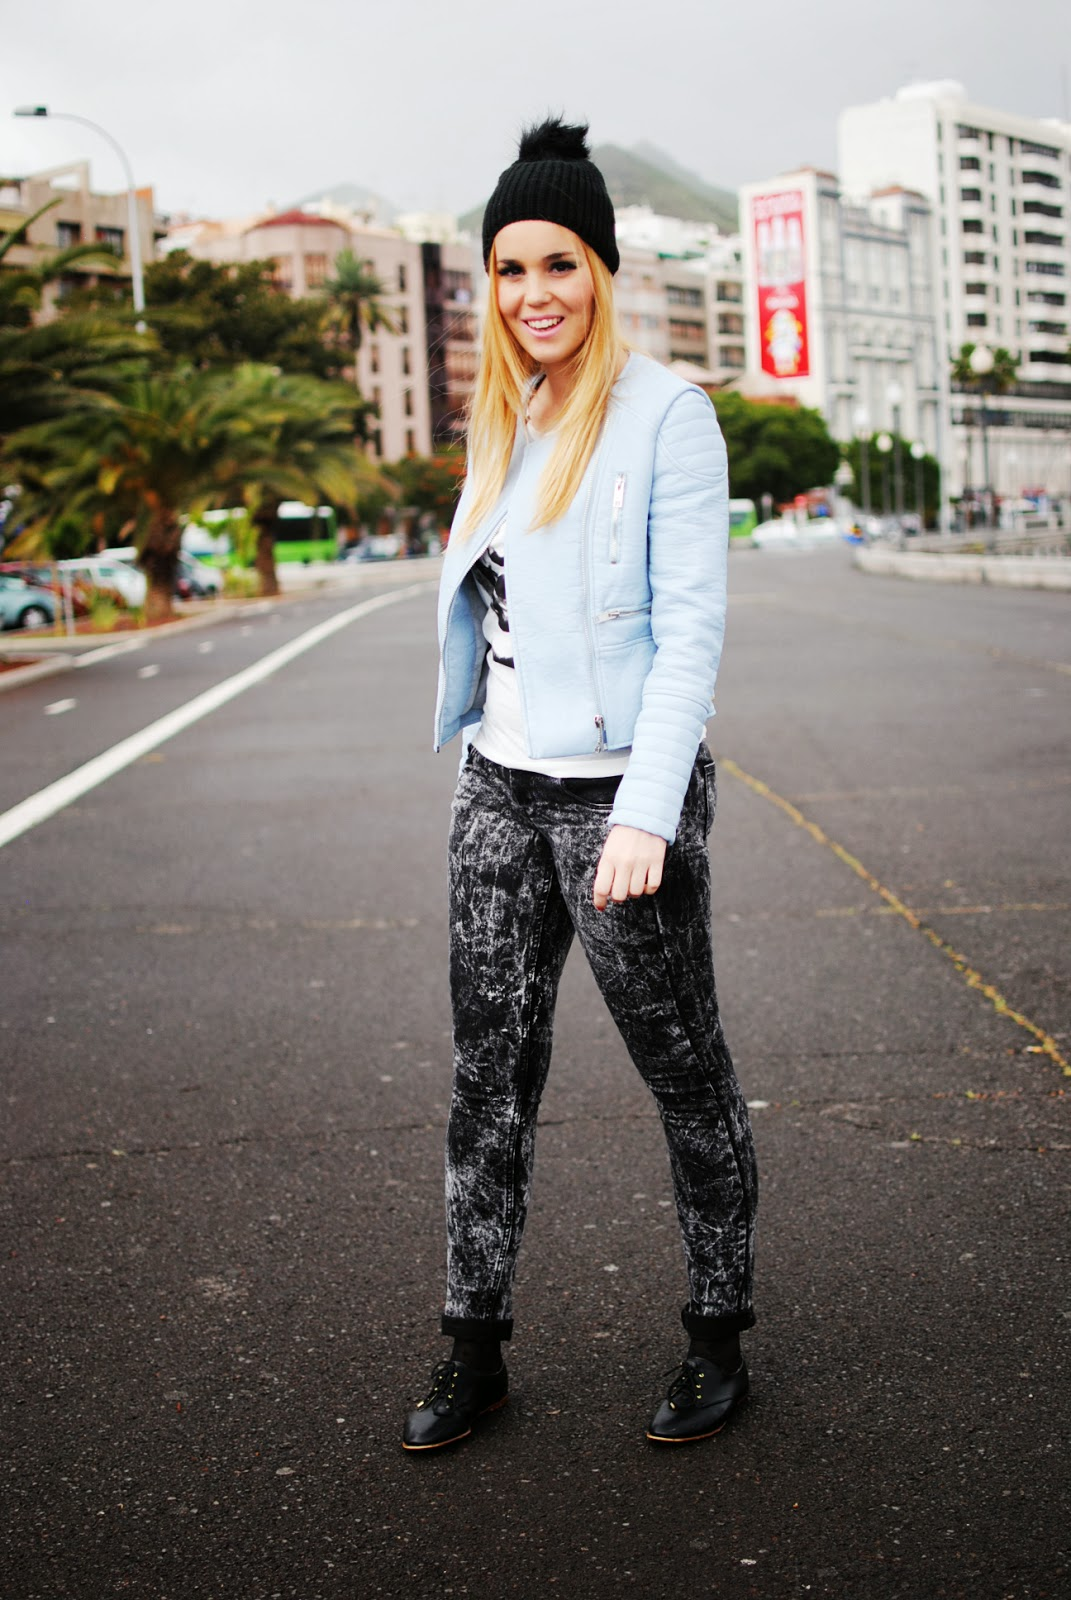 nery hdez, vjstyle, beanie, oxford shoes, blue biker, baby blue